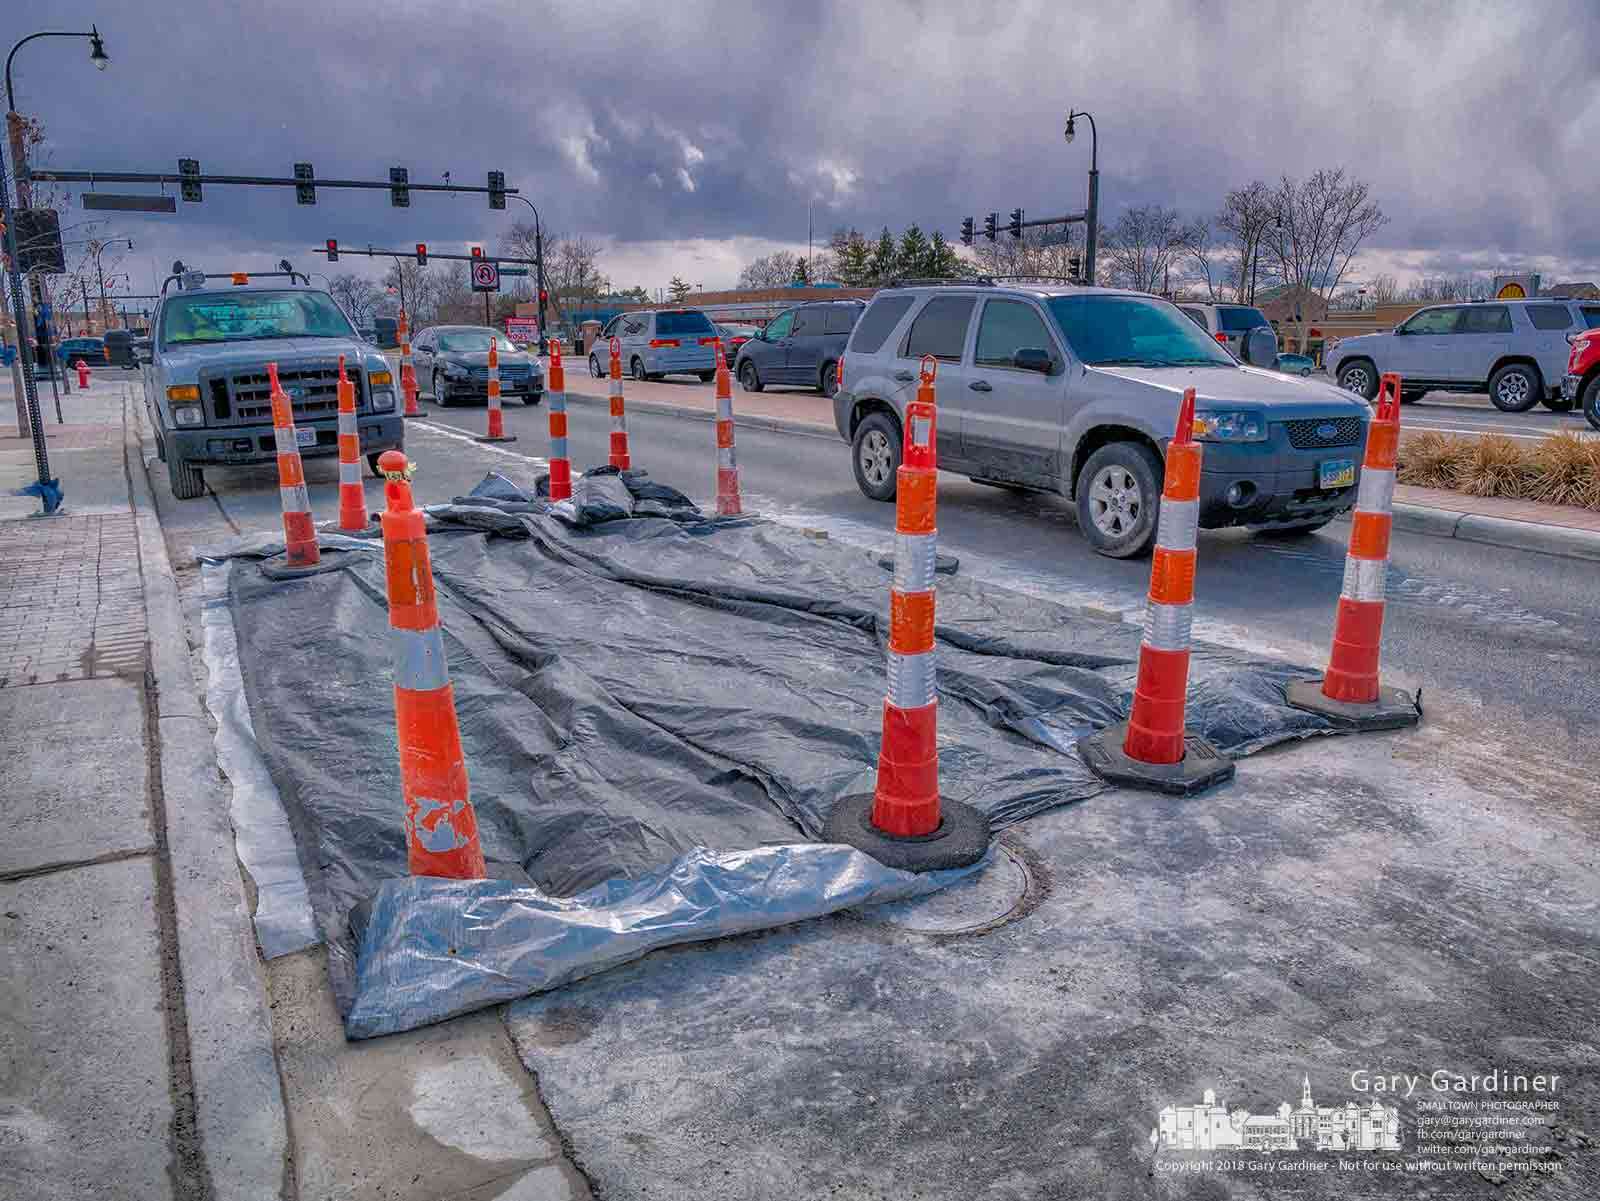 A Karvo Construction crew waits as a decision is made about how much longer to wait before removing traffic cones and a tarp covering concrete laid earlier in the day to repair a section of the pad for a bus stop at the corner of State and Schrock. My Final Photo for March 13, 2018.